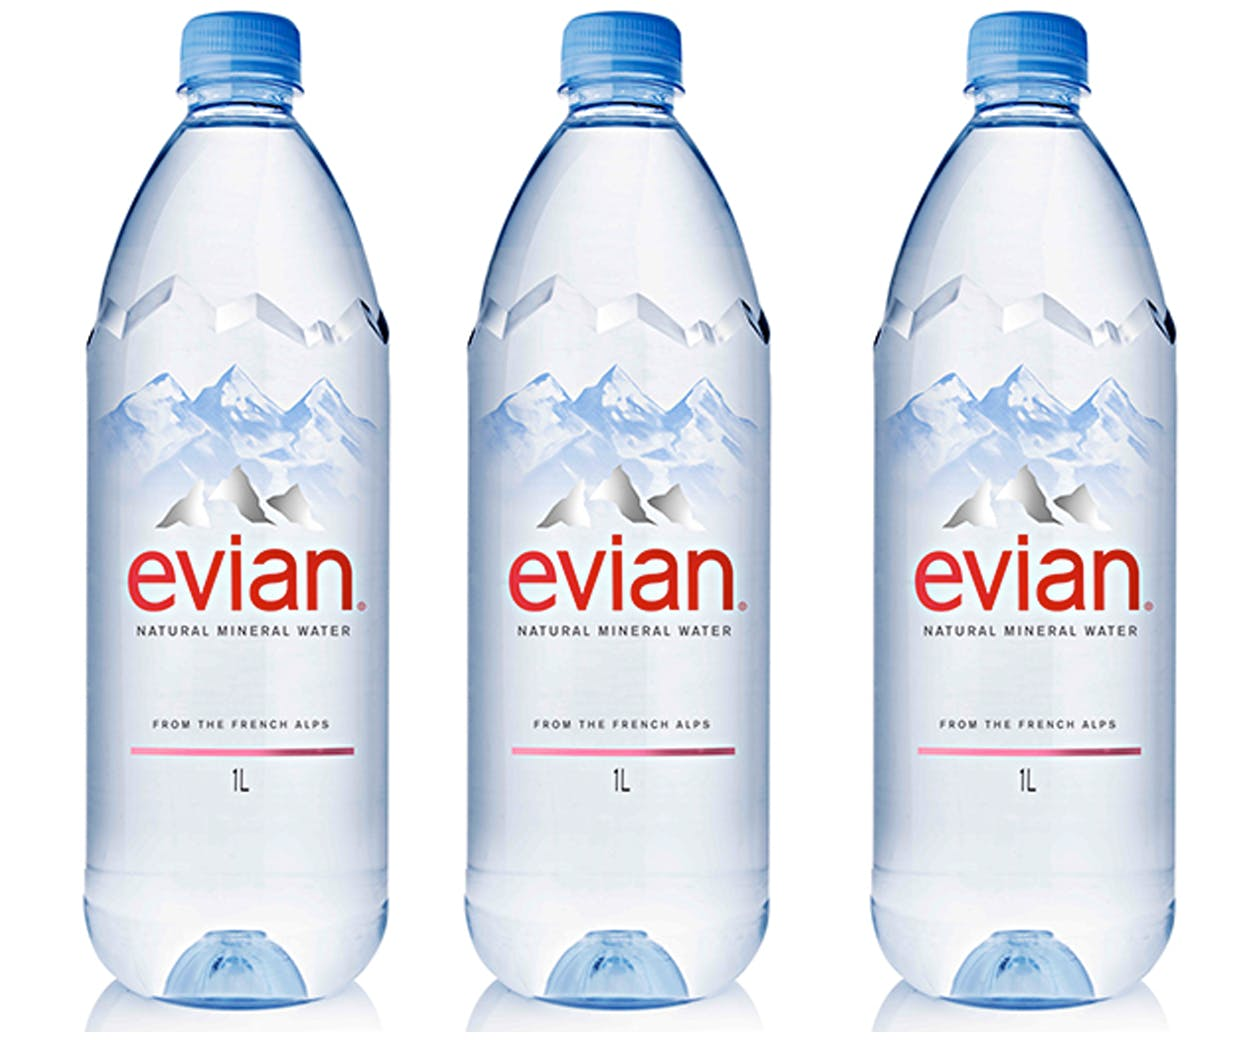 Evian issues call-to-arms to brands to do more on plastic waste